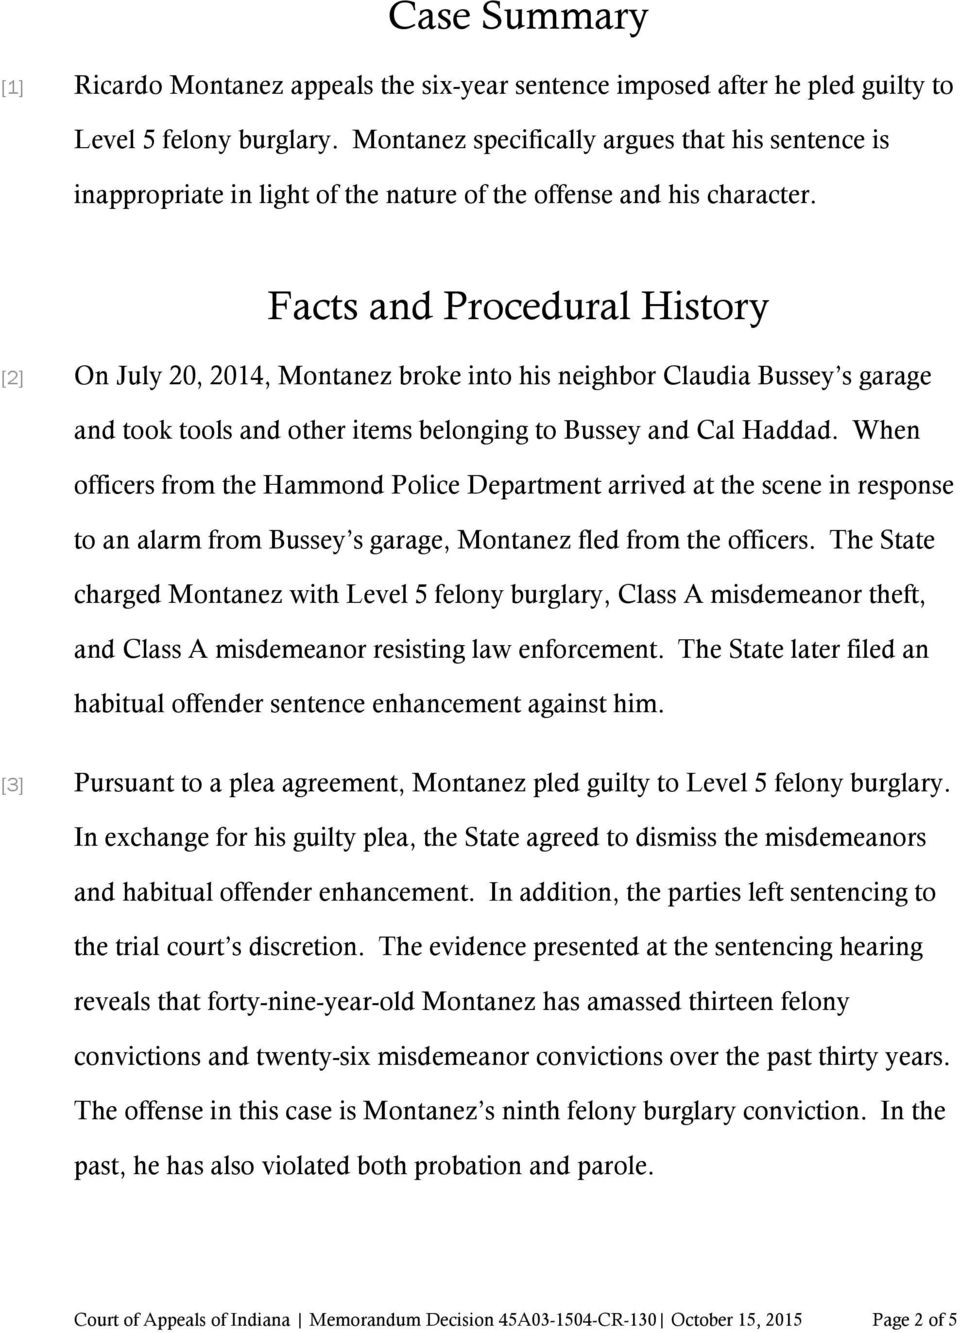 Facts and Procedural History [2] On July 20, 2014, Montanez broke into his neighbor Claudia Bussey s garage and took tools and other items belonging to Bussey and Cal Haddad.